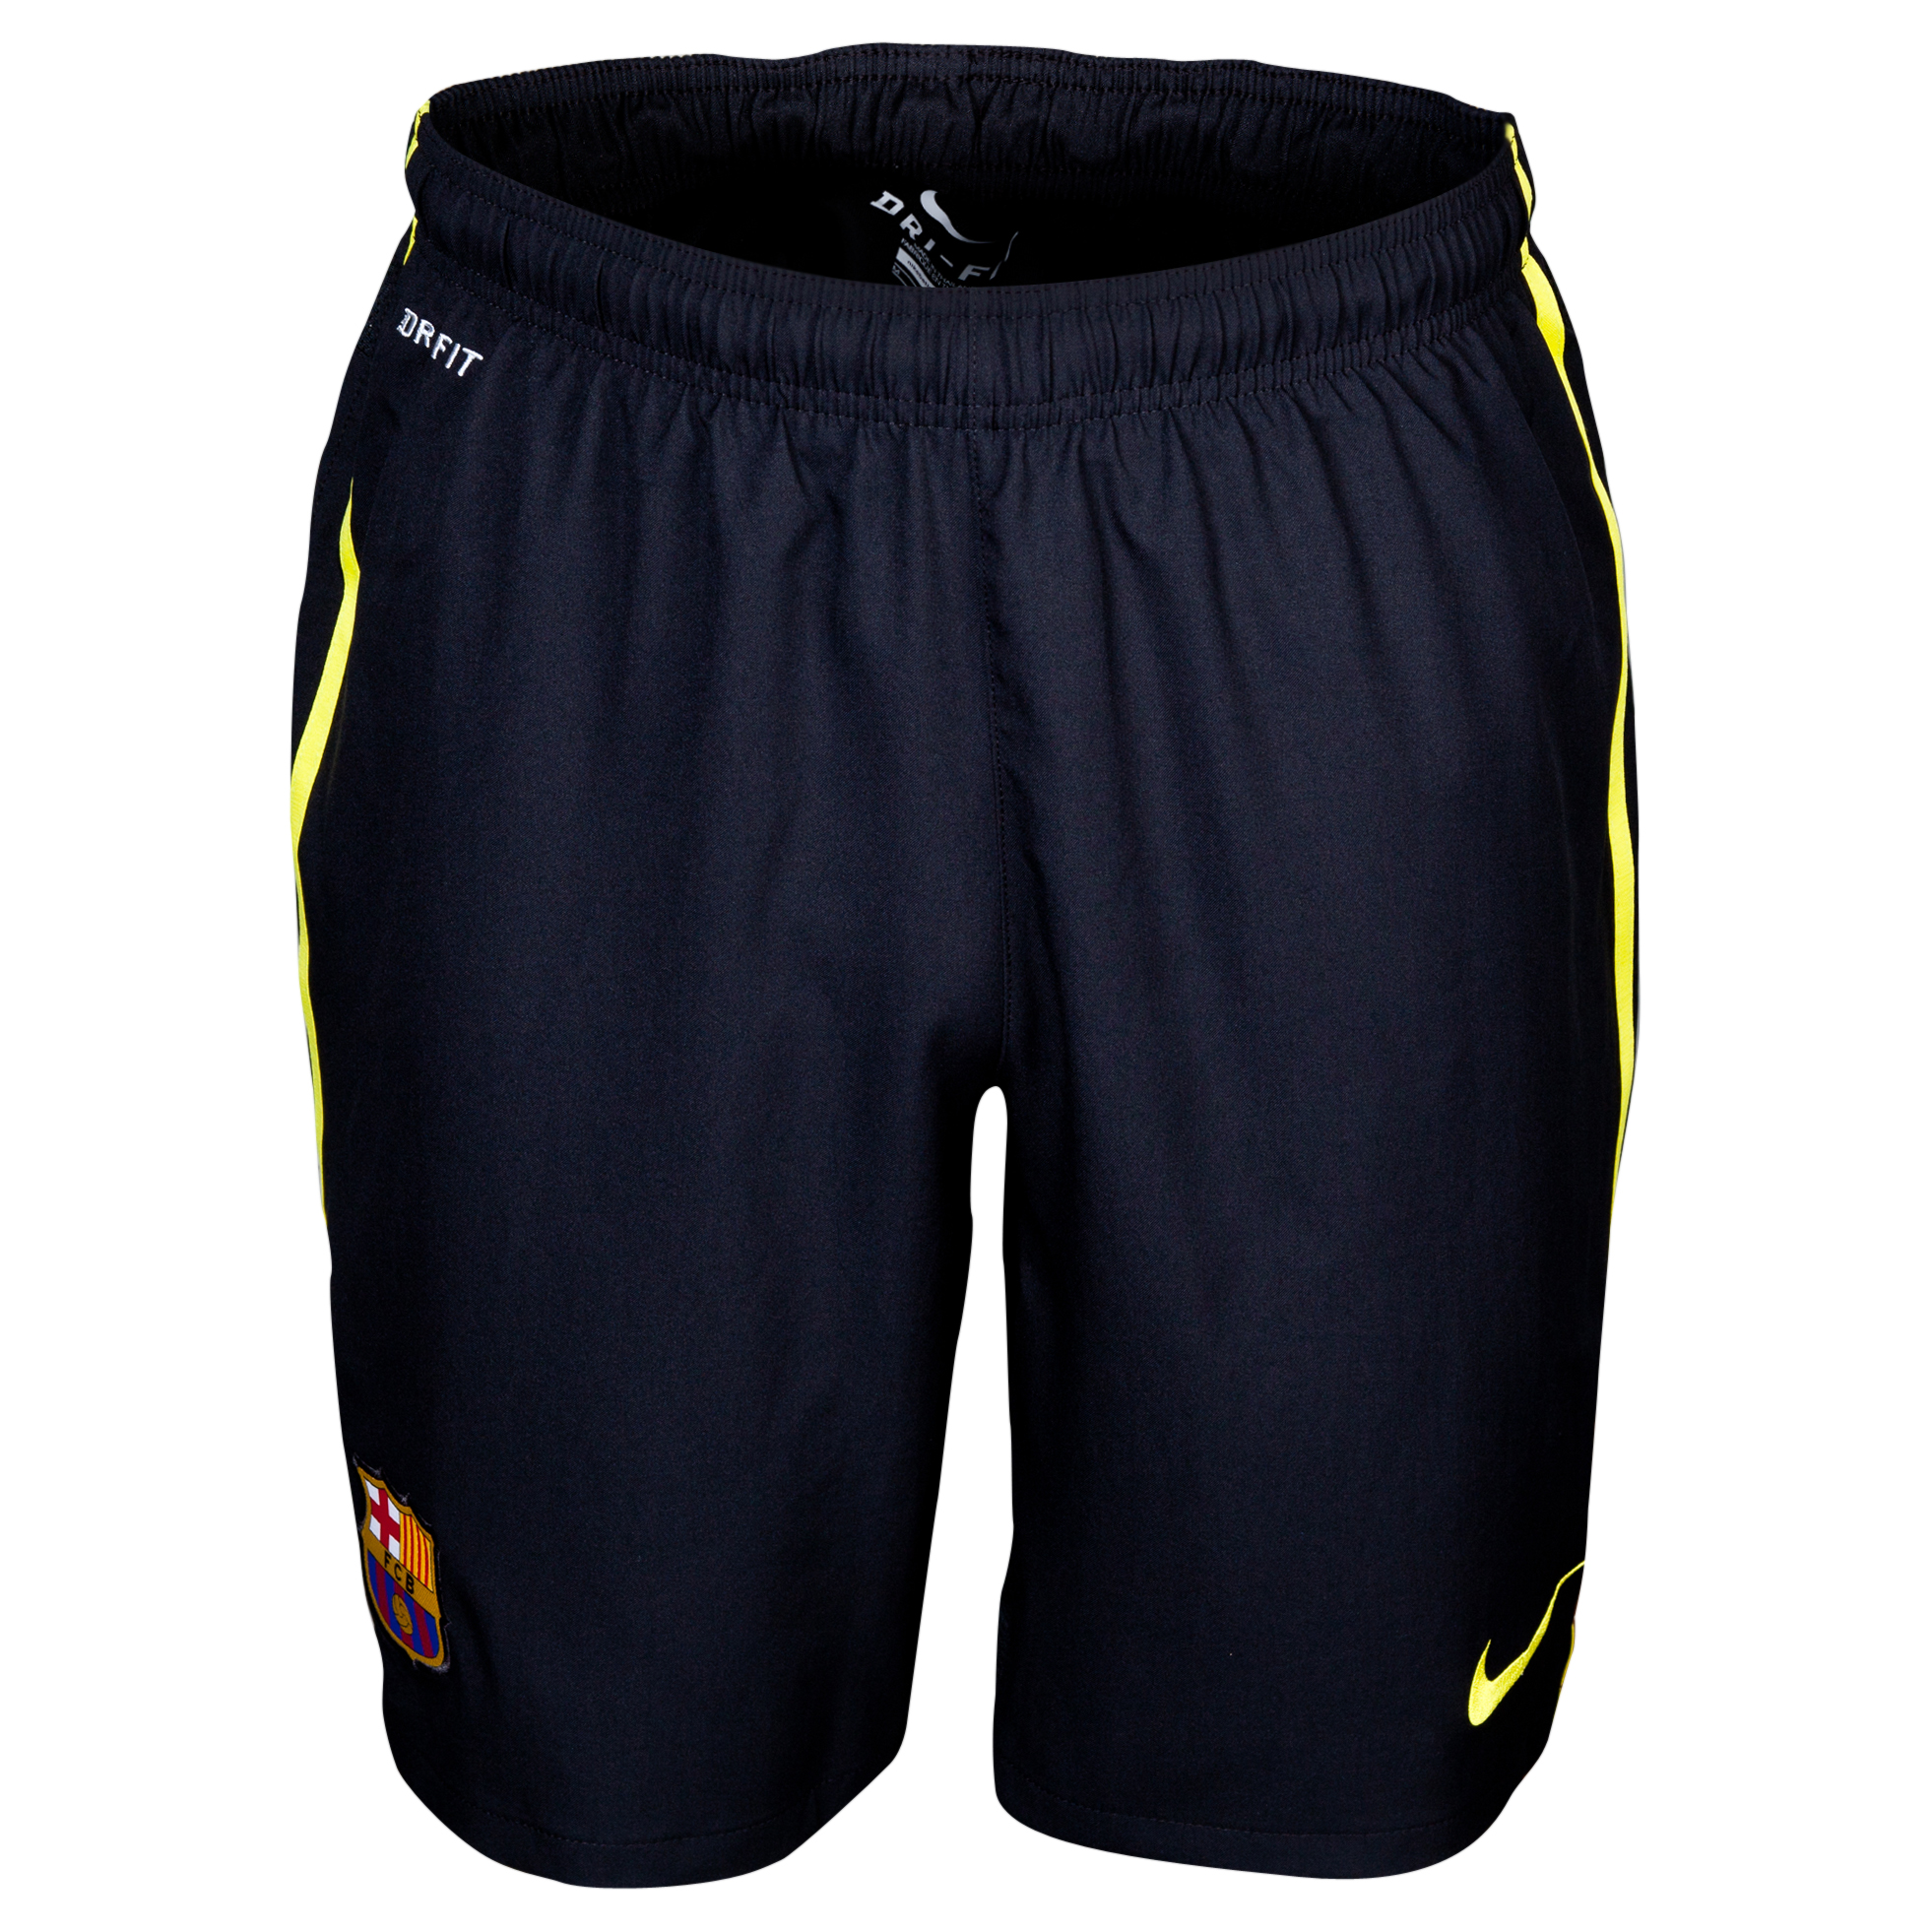 Barcelona Third Shorts 2013/14